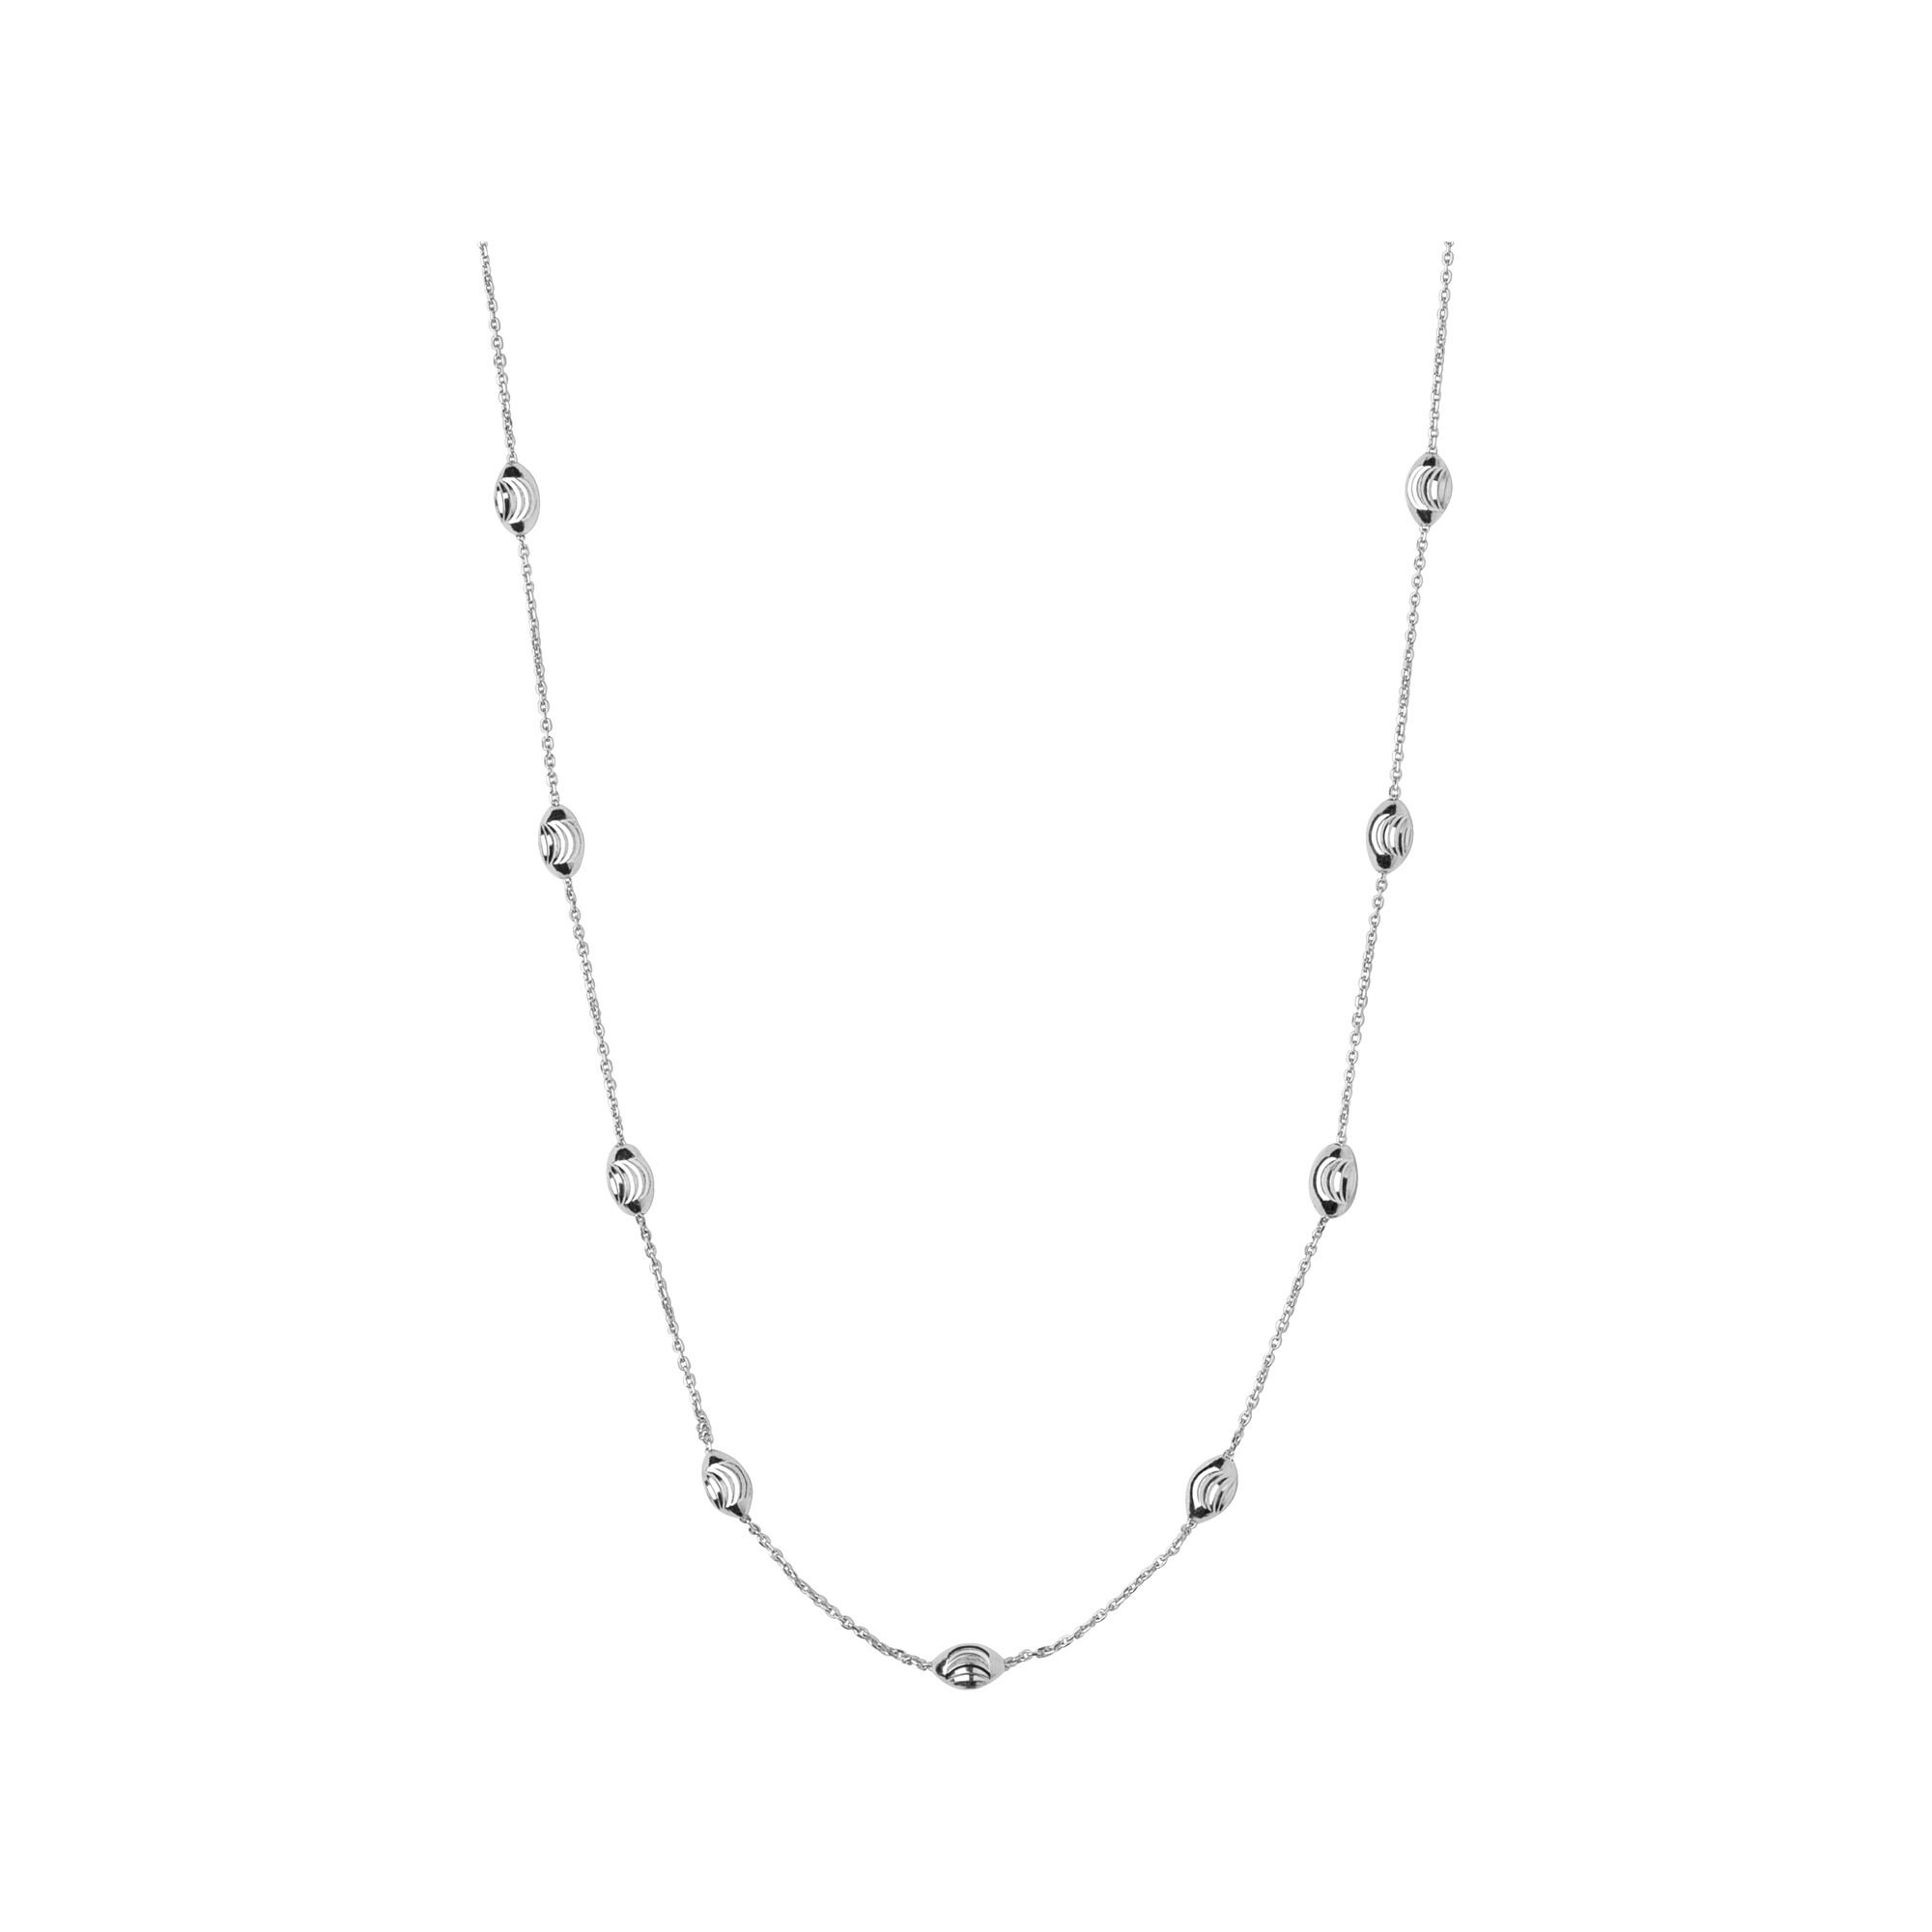 Essentials Sterling Silver Beaded Chain 80cm Hires